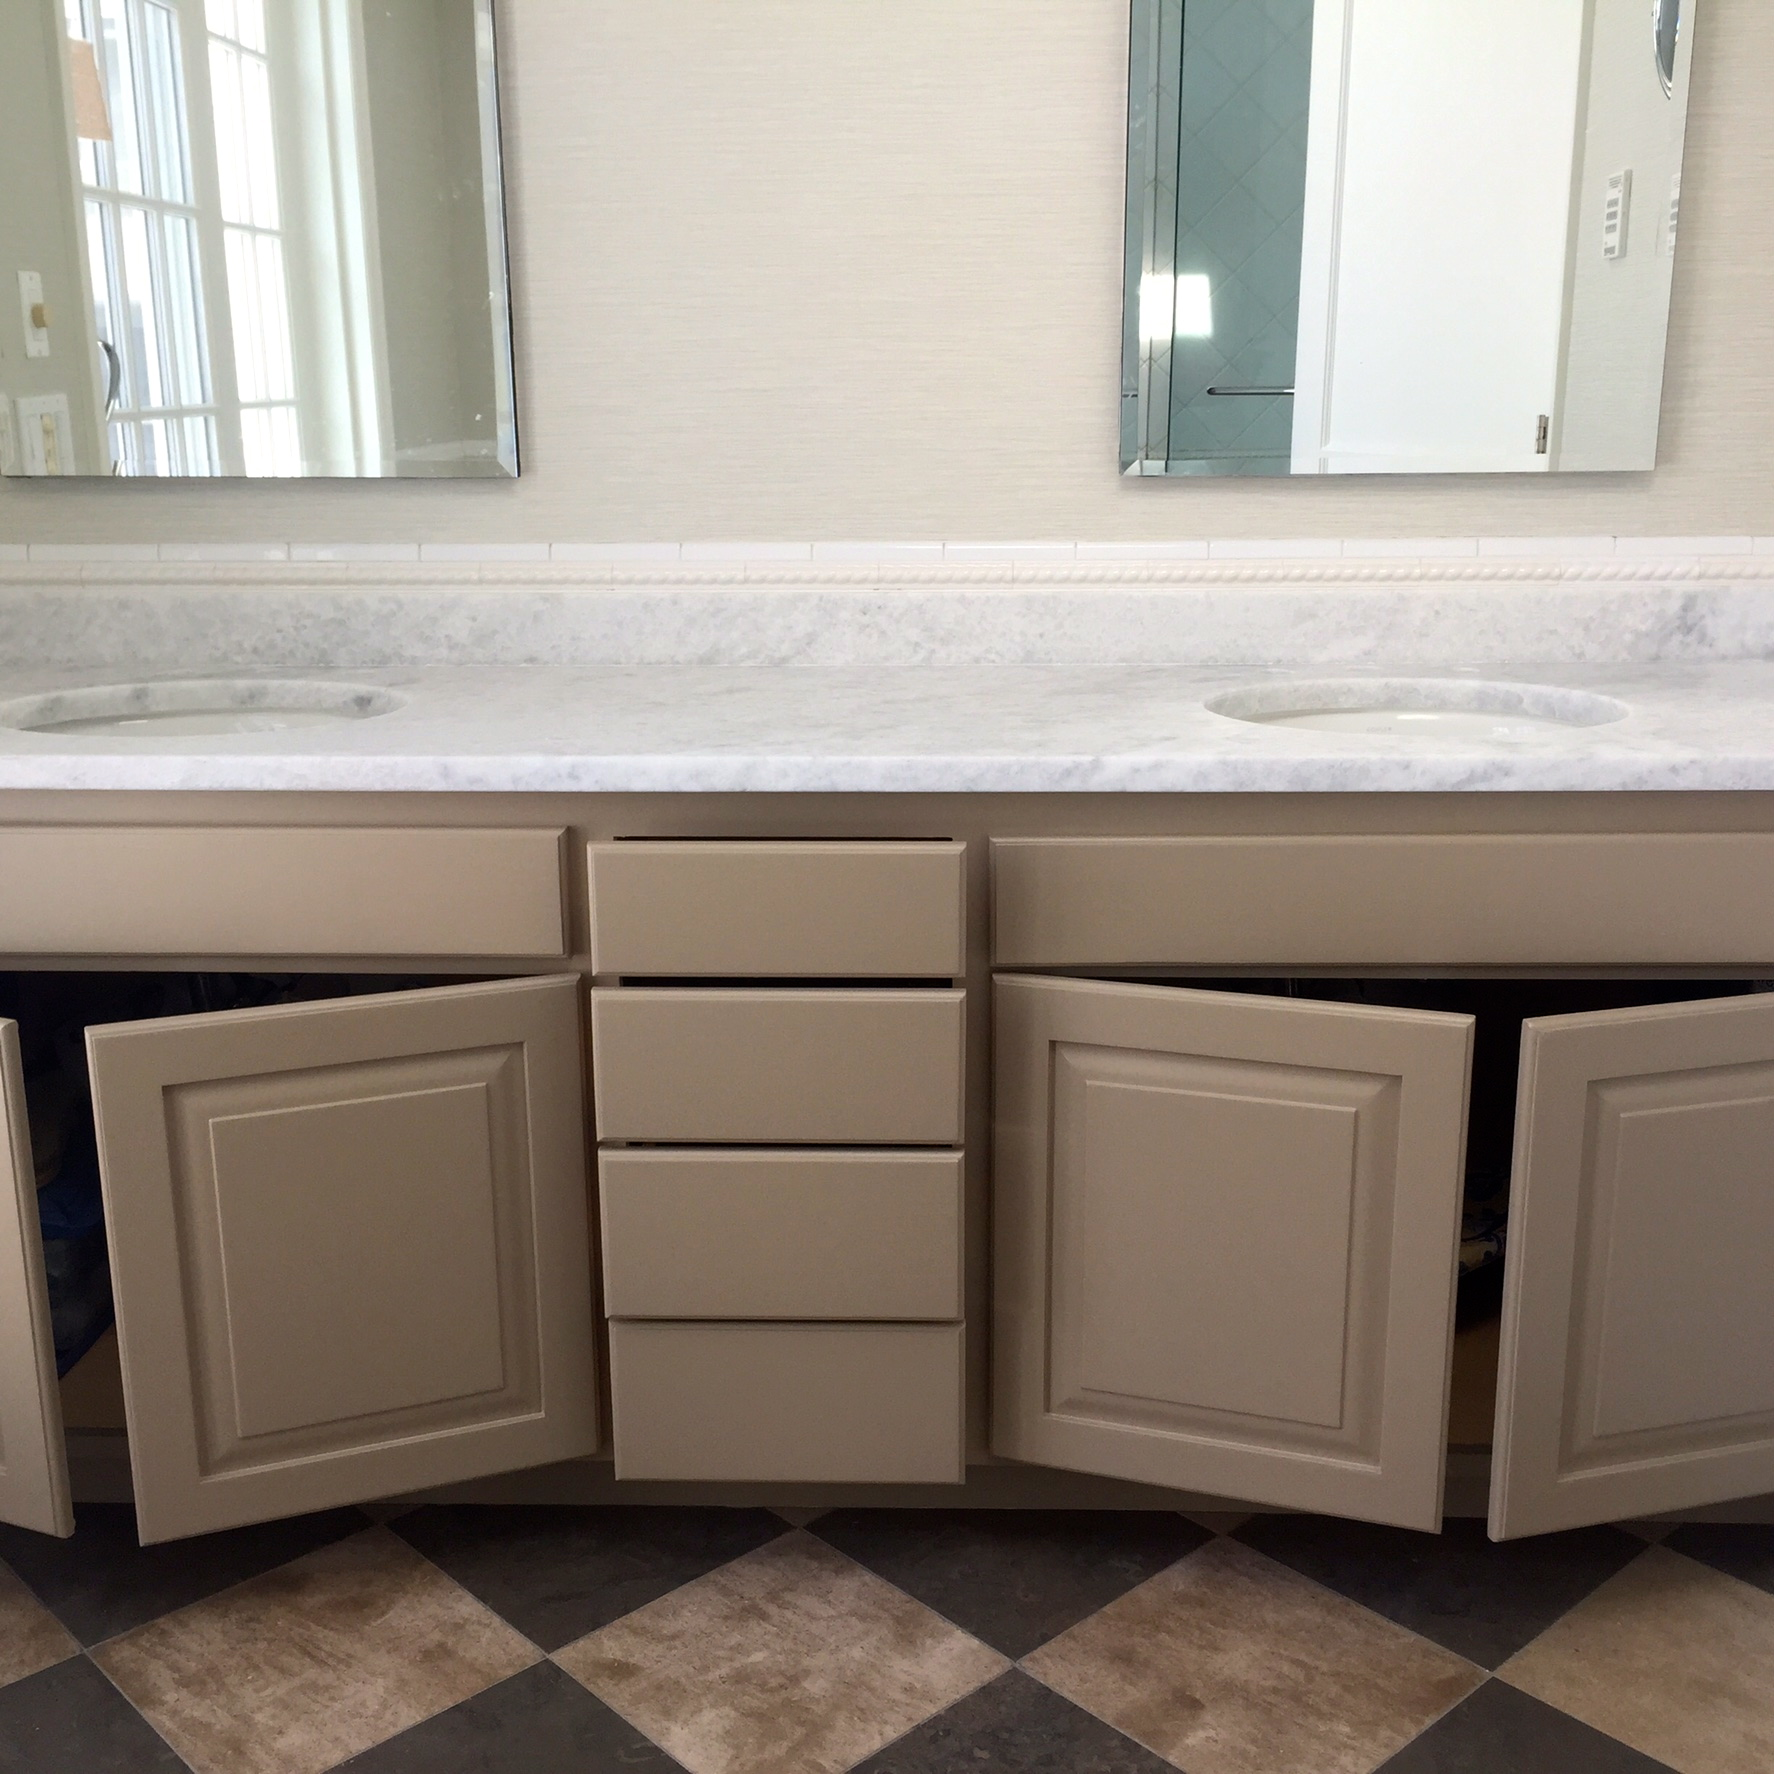 Cost To Replace Bathroom Vanity 28 Images Freestanding Vanity Cost To Install Vanity Sink